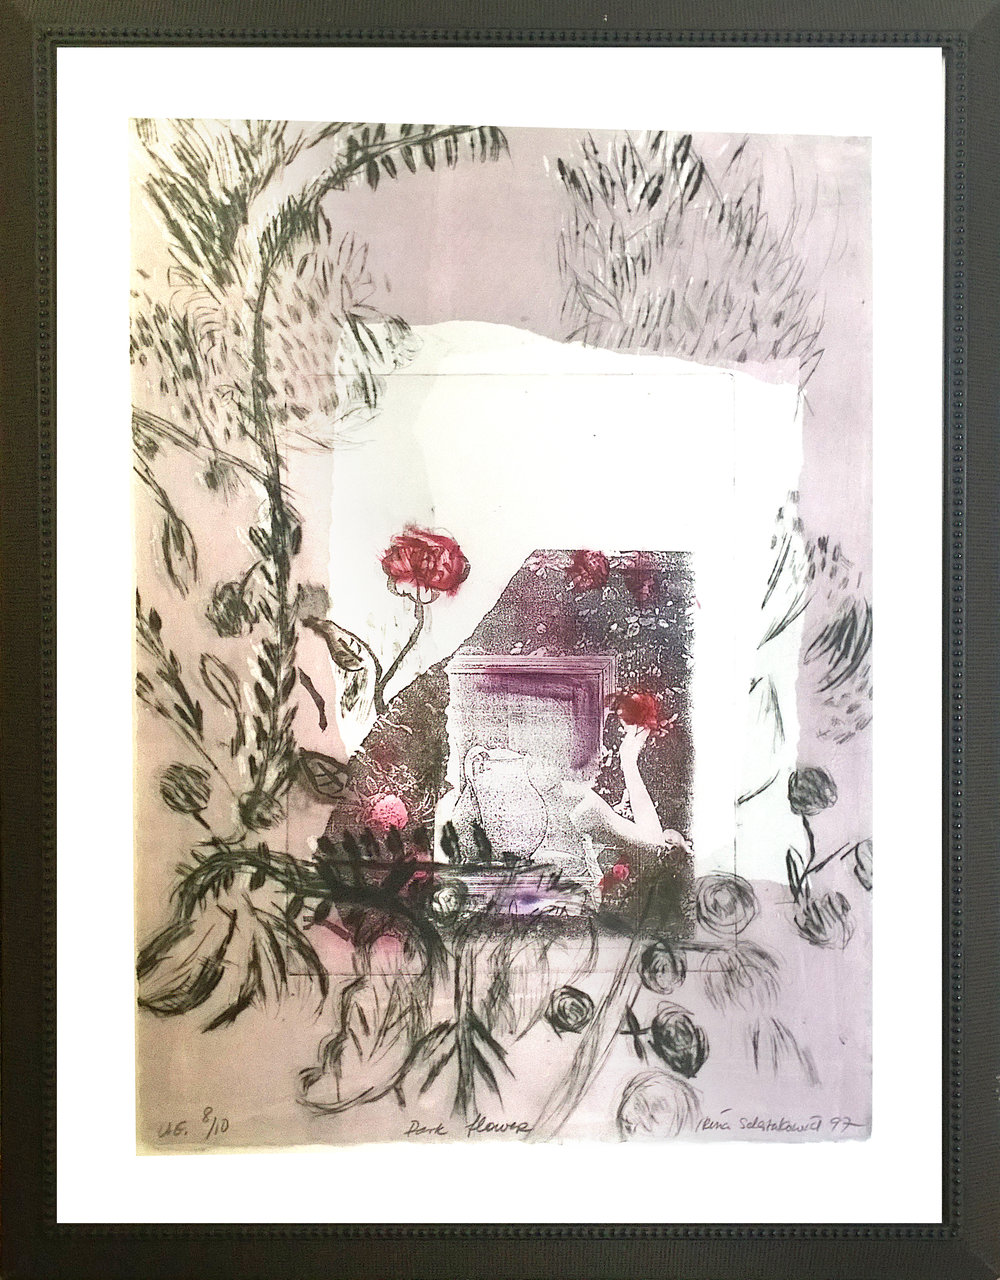 "Dark Flower - Artist: Irina SchestakowichMedium: drypoint monoprint 8/10Size: 20""x26""Value: $800Starting Bid: $350Irina Schestakowich spent her childhood in Montreal and has been in Toronto since the 1980's. Irina graduated from the University of Victoria, BC in Fine Arts. She specialized in printmaking and early classical Buddhist imagery. She is an active member of Open Studio.http://store.openstudio.on.ca/irina-schestakowich-s/1976.htm"